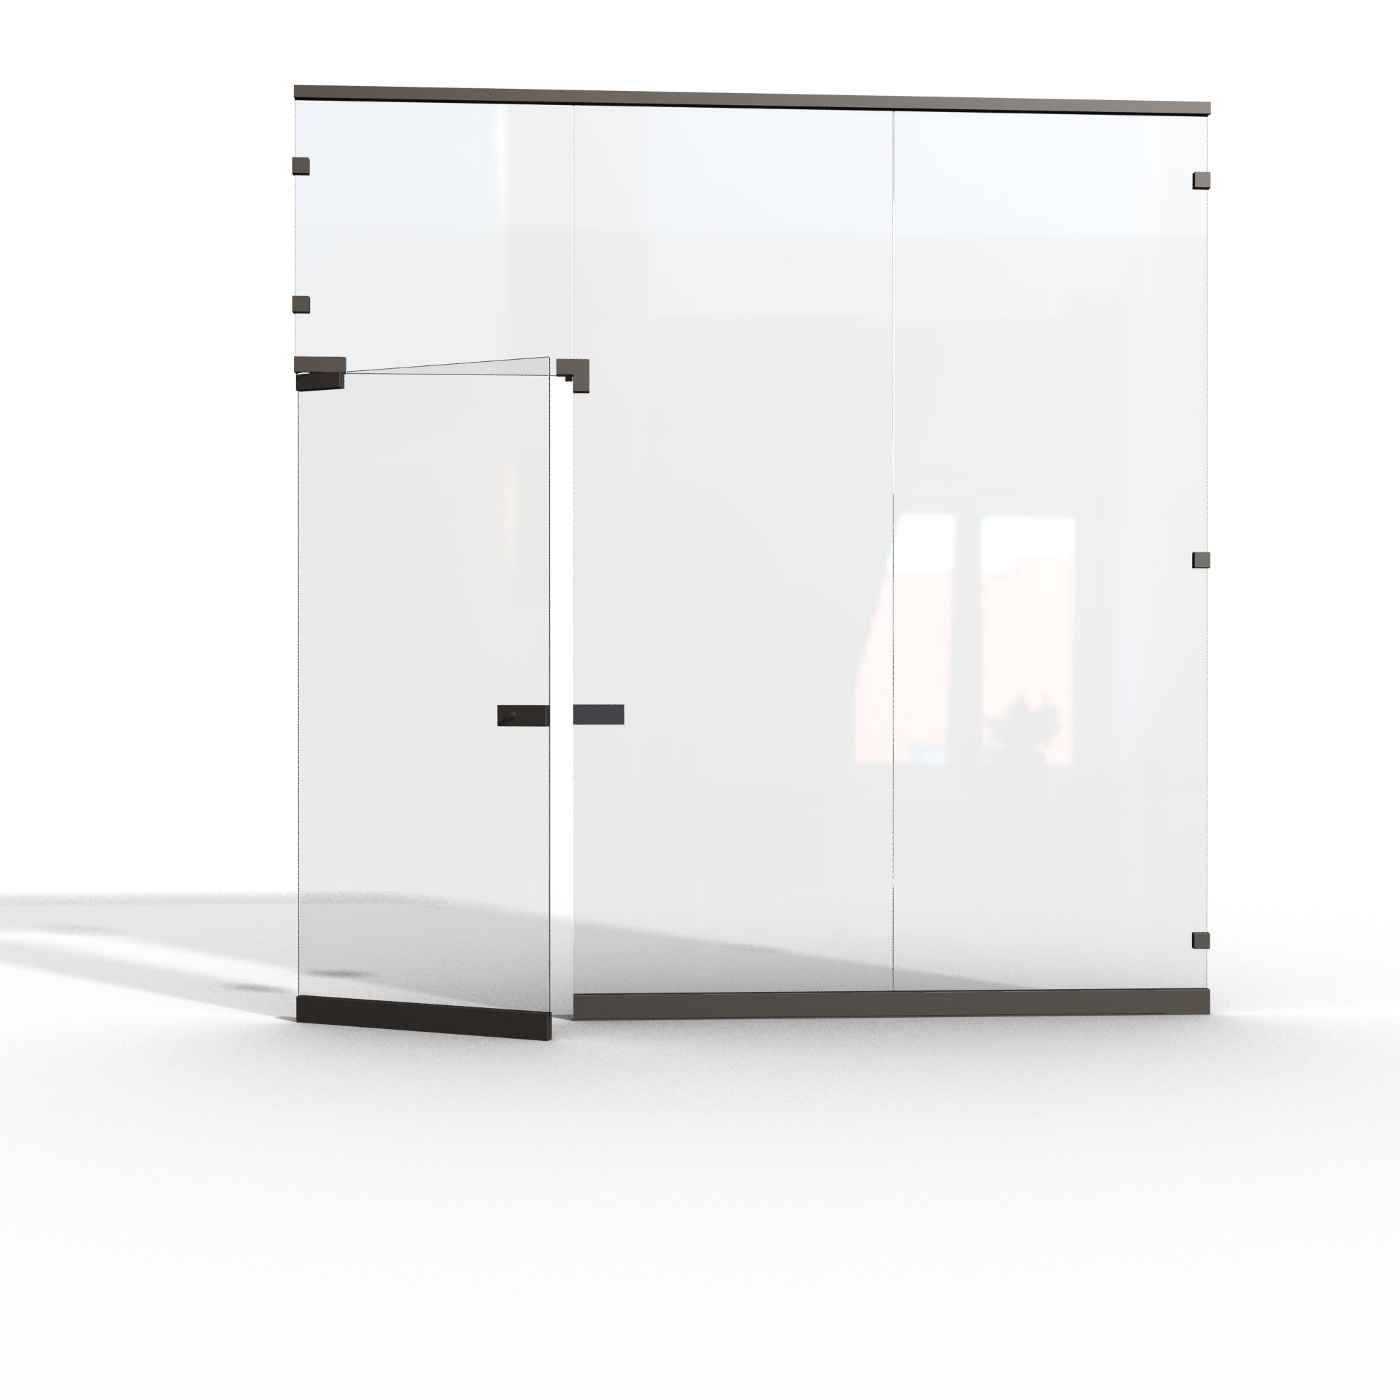 Glass walls partitions system ideas for Glass walls and doors